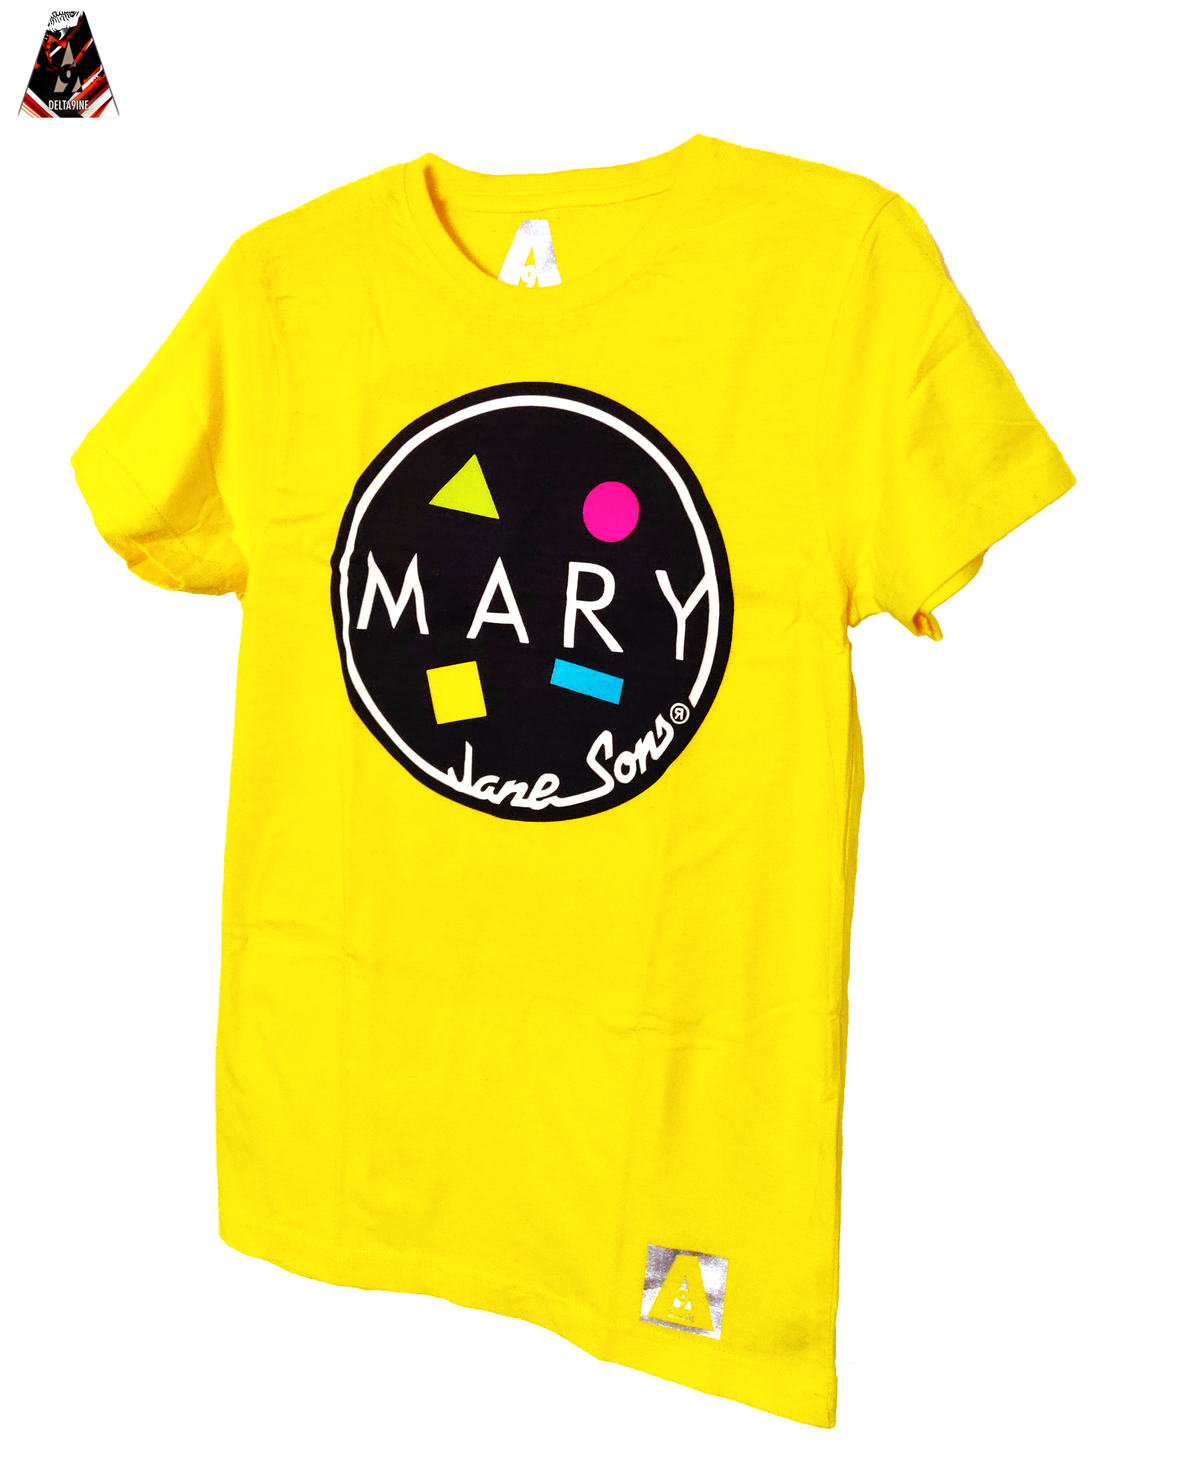 "Image of ΔELTA9INE ""MARY JANE SONS"" T-SHIRT"